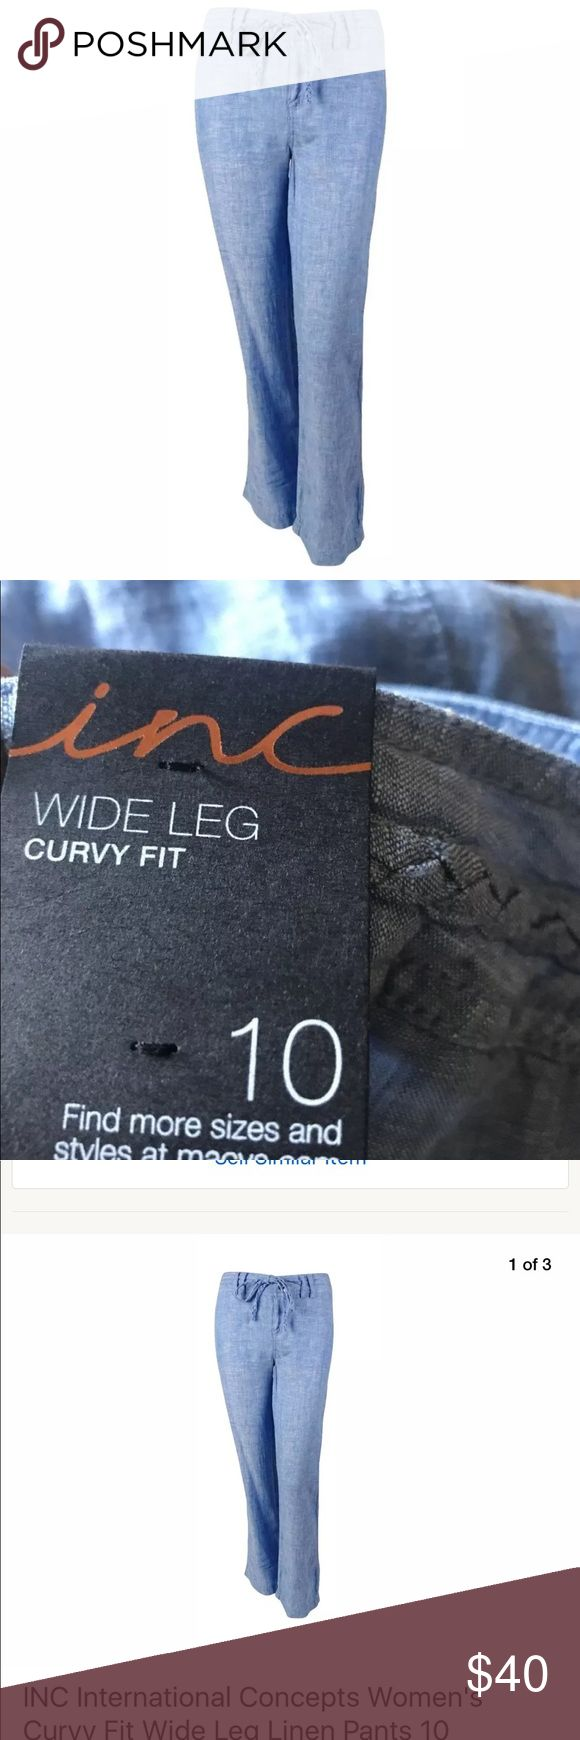 New linen chambray wide leg pants INC International Concepts Women's Curvy Fit Wide Leg 100% Linen Pants 10 Chambray  Suggested Retail Price: $69.5  Item Condition: New With Tags  Pants feature linen blend fabric, wide leg, front and back pockets, braided detail and zip fly with button closure.  Machine wash INC International Concepts Pants Wide Leg